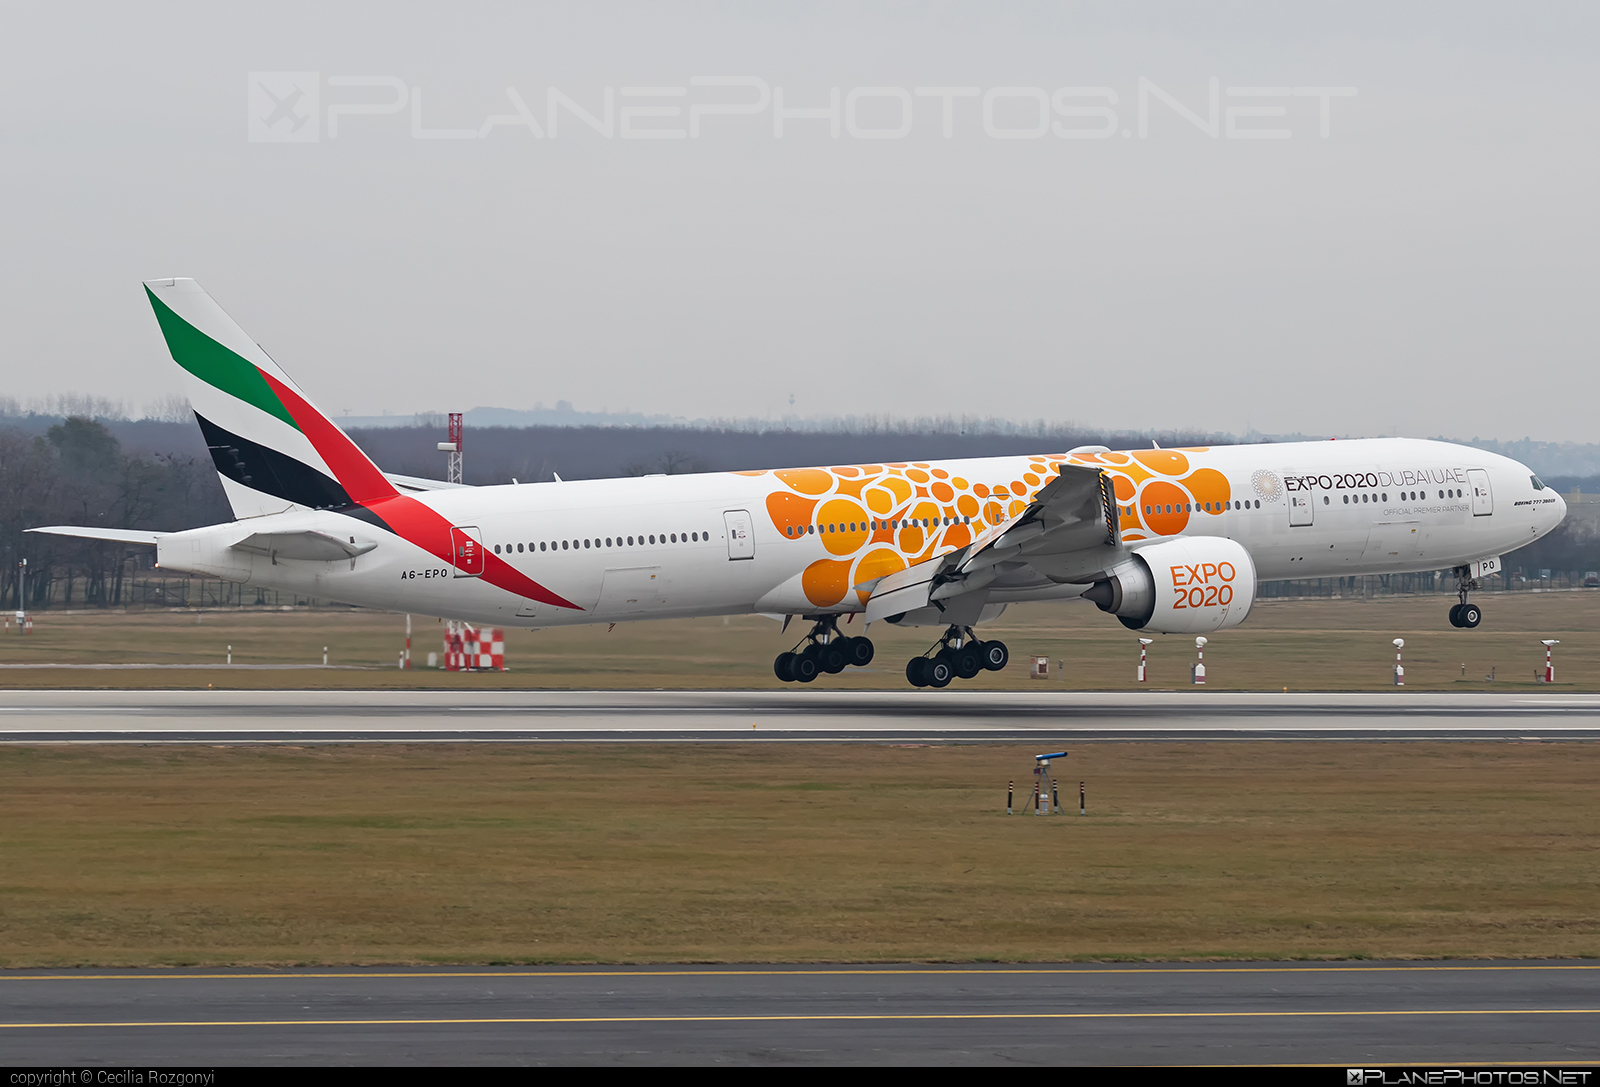 Boeing 777-300ER - A6-EPO operated by Emirates #b777 #b777er #boeing #boeing777 #emirates #tripleseven